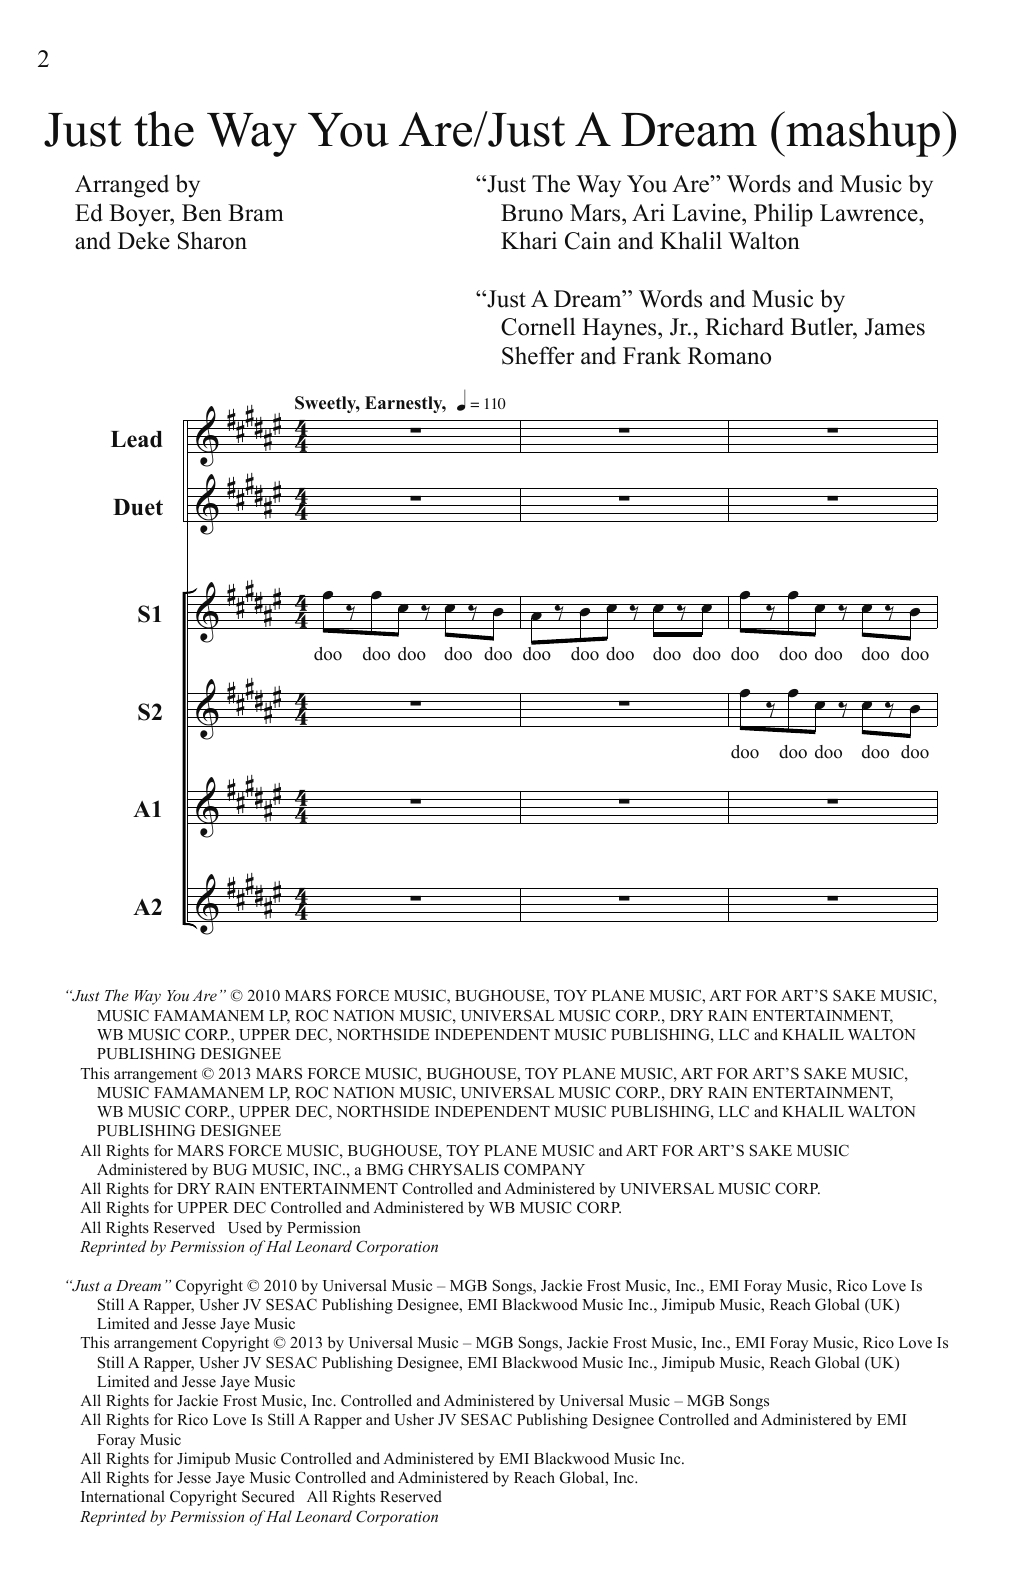 Pitch Perfect (Movie) Just The Way You Are/Just A Dream (Mashup) (from Pitch Perfect) (arr. Deke Sharon) sheet music notes and chords. Download Printable PDF.